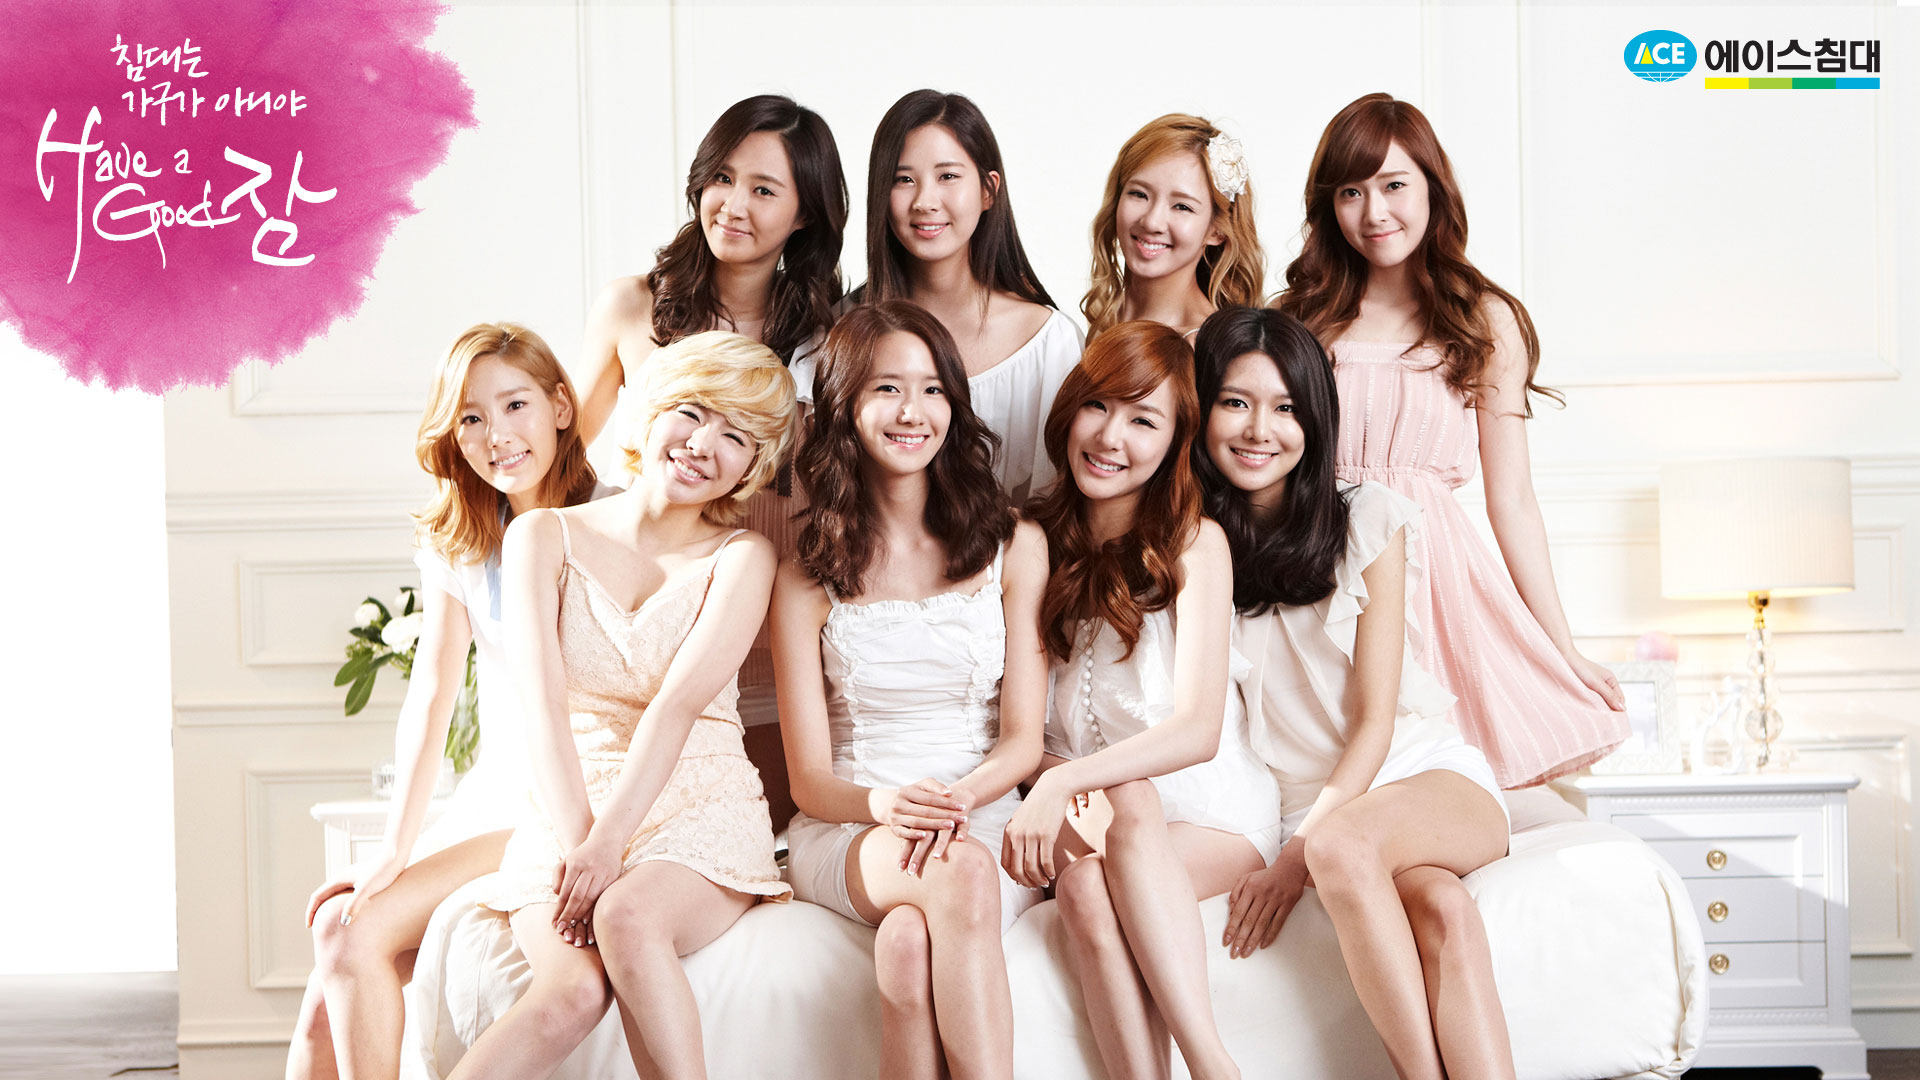 SNSD members Ace Bed wallpaper